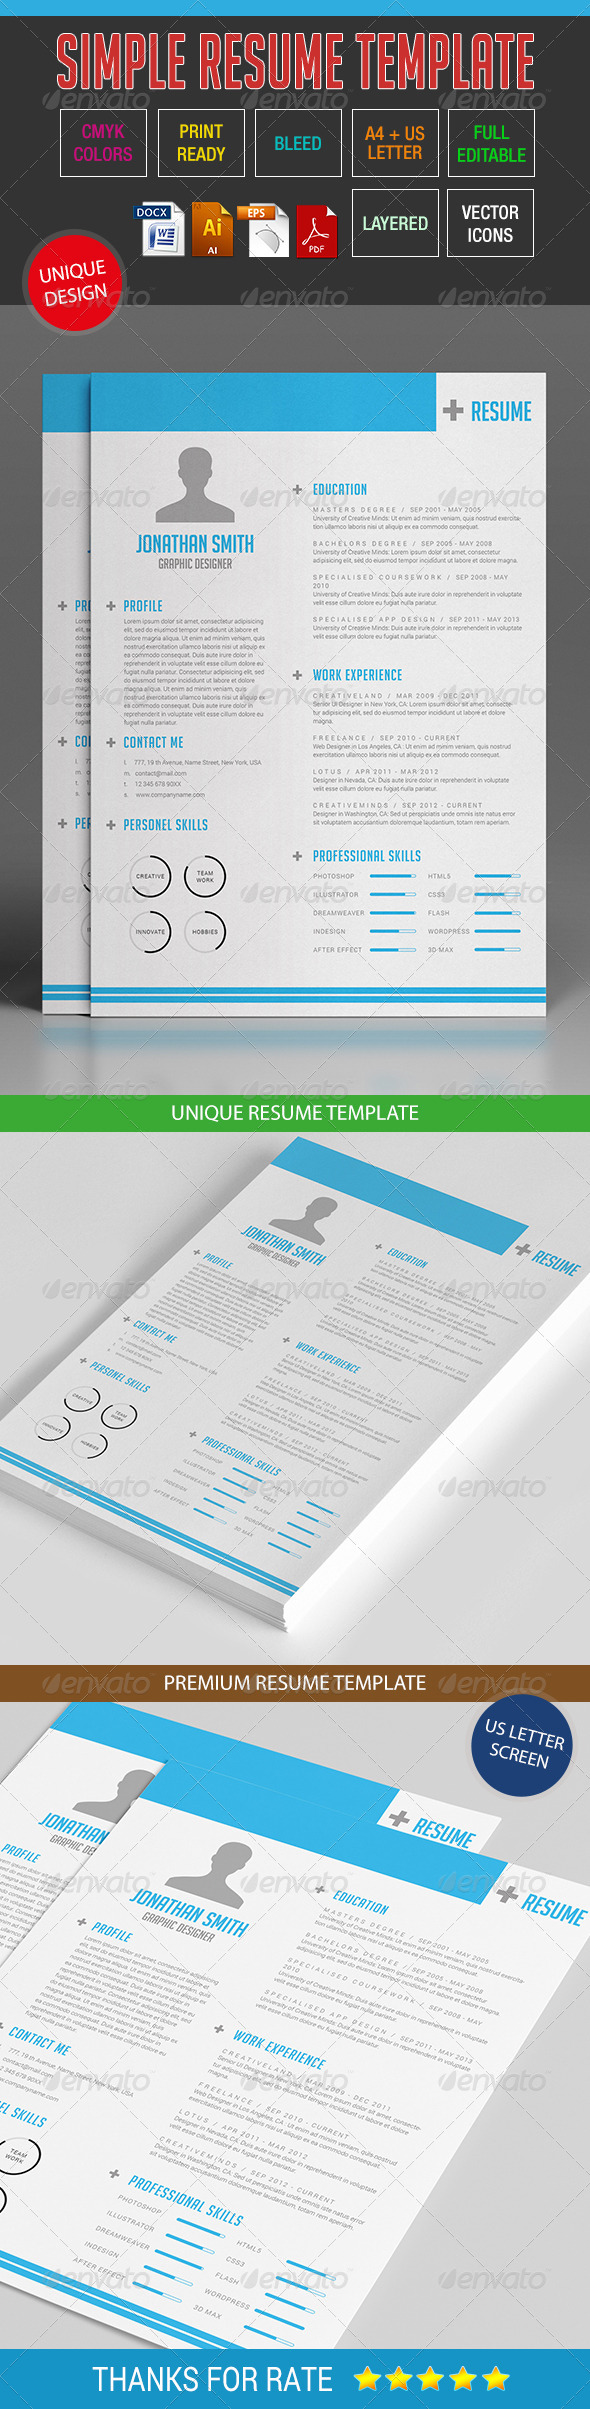 GraphicRiver Simple Resume Template 10 8643550